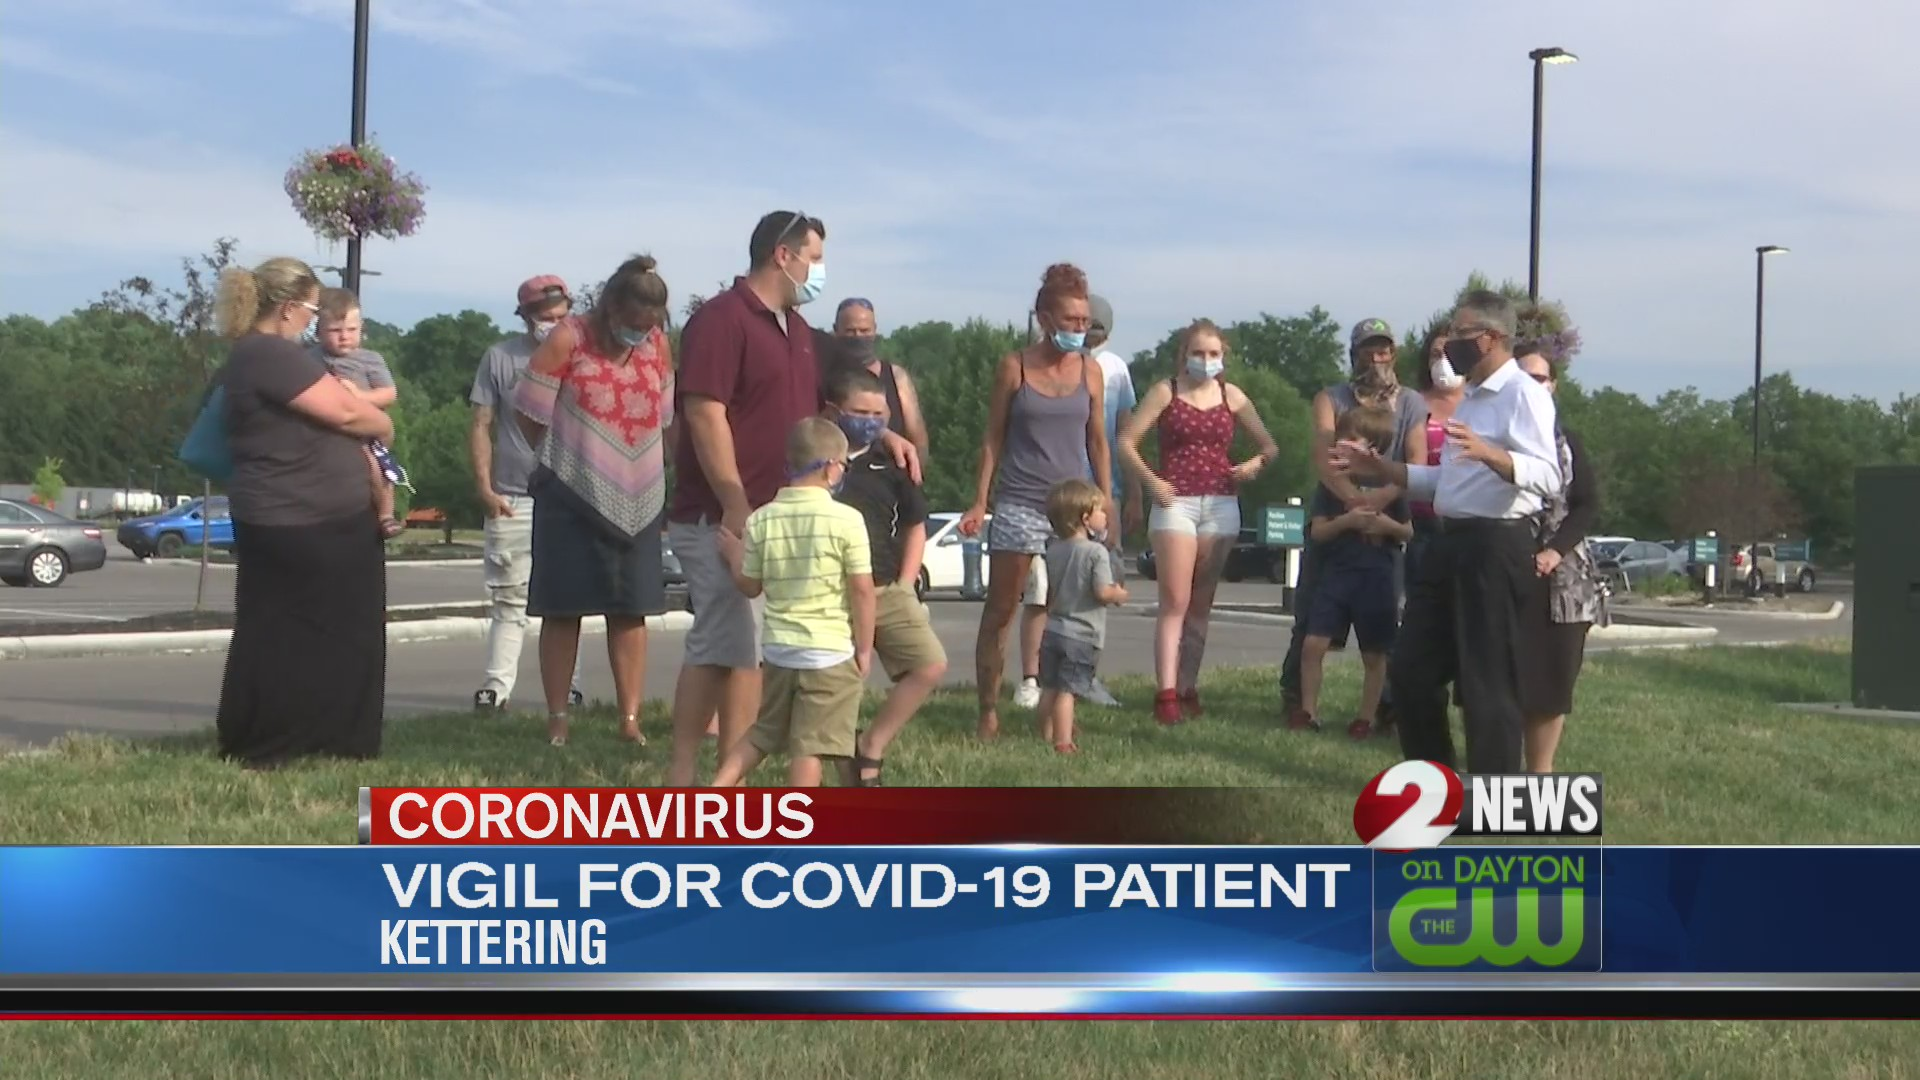 Vigil held for COVID-19 patient